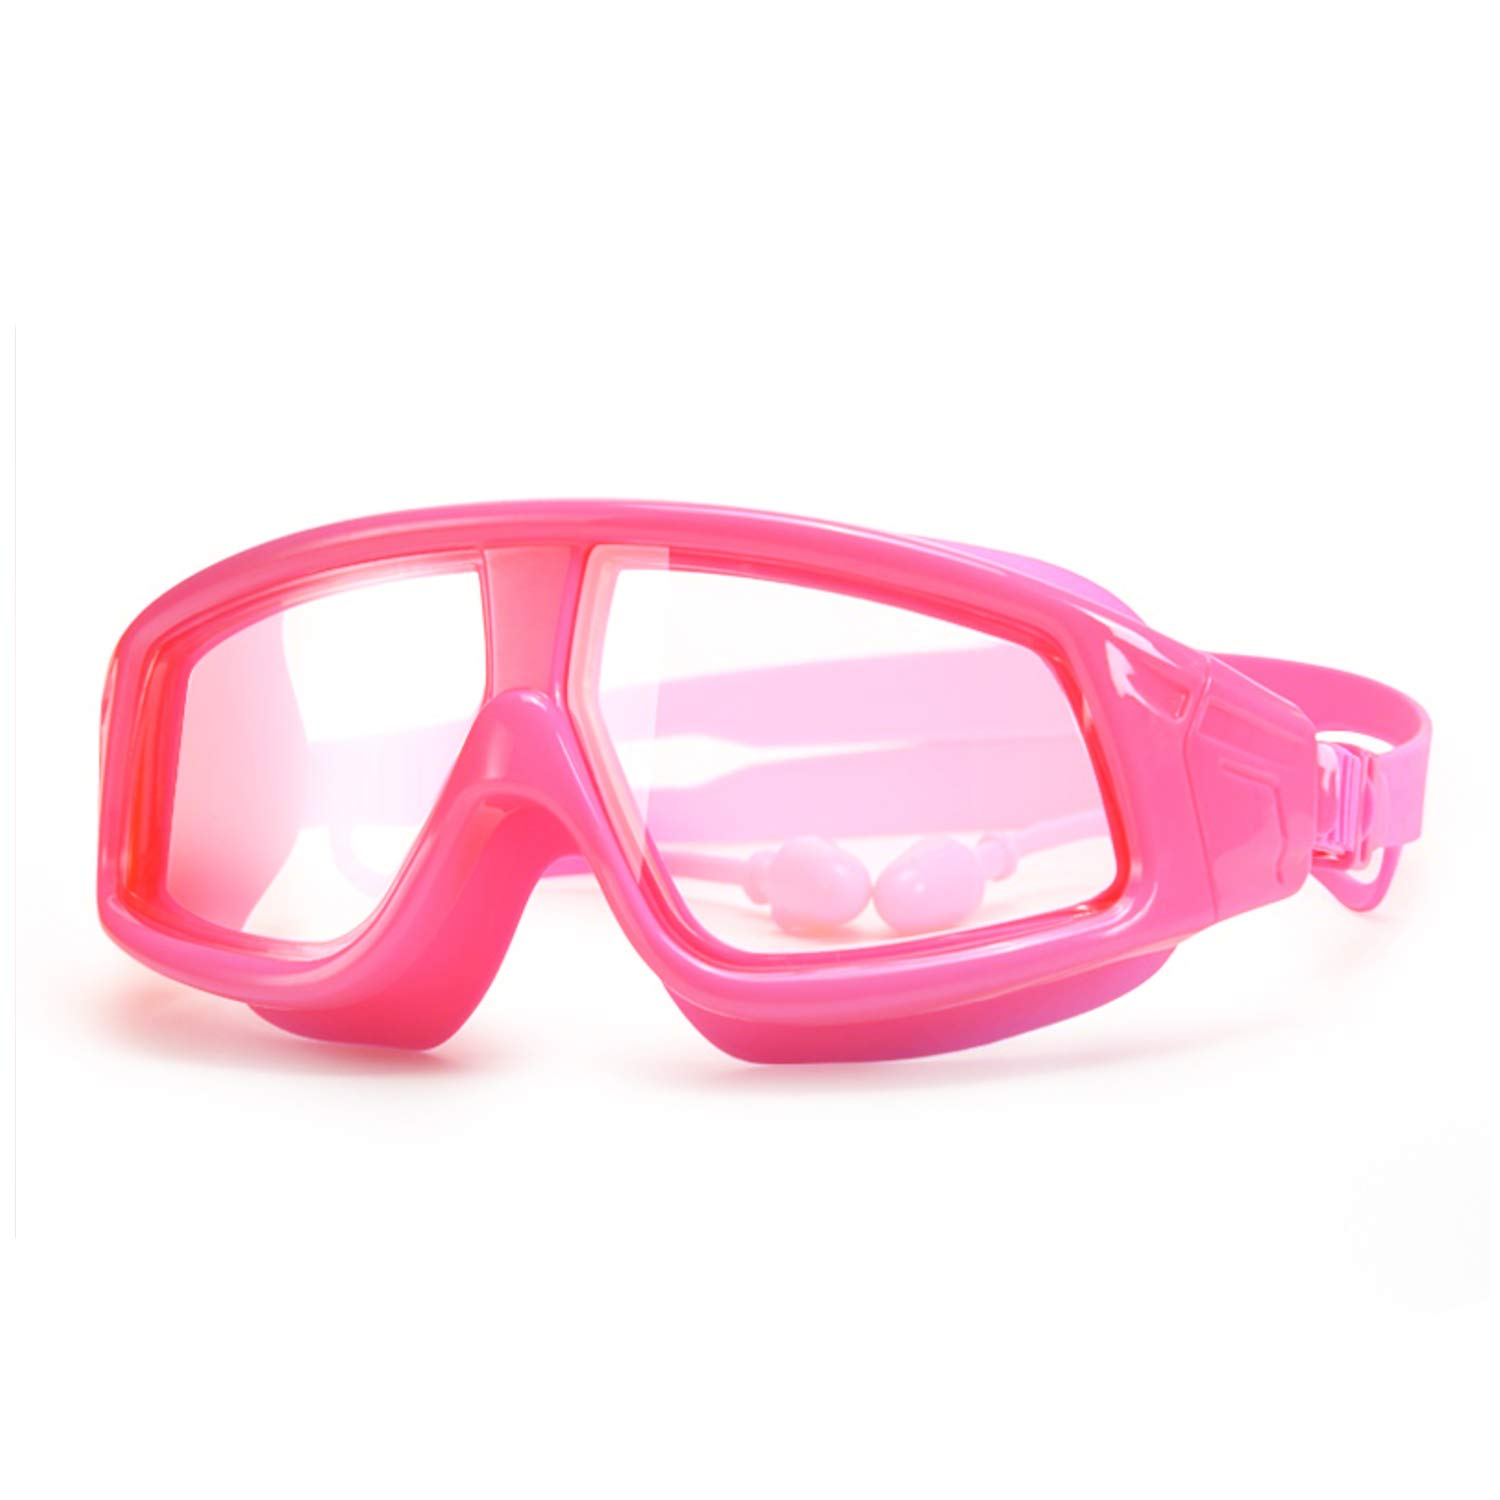 Kids Swim Goggles, Swimming Goggles for Kids 3-12 Years with Anti-Fog UV Protection No Leaking Earplugs for Boys Girls Youth